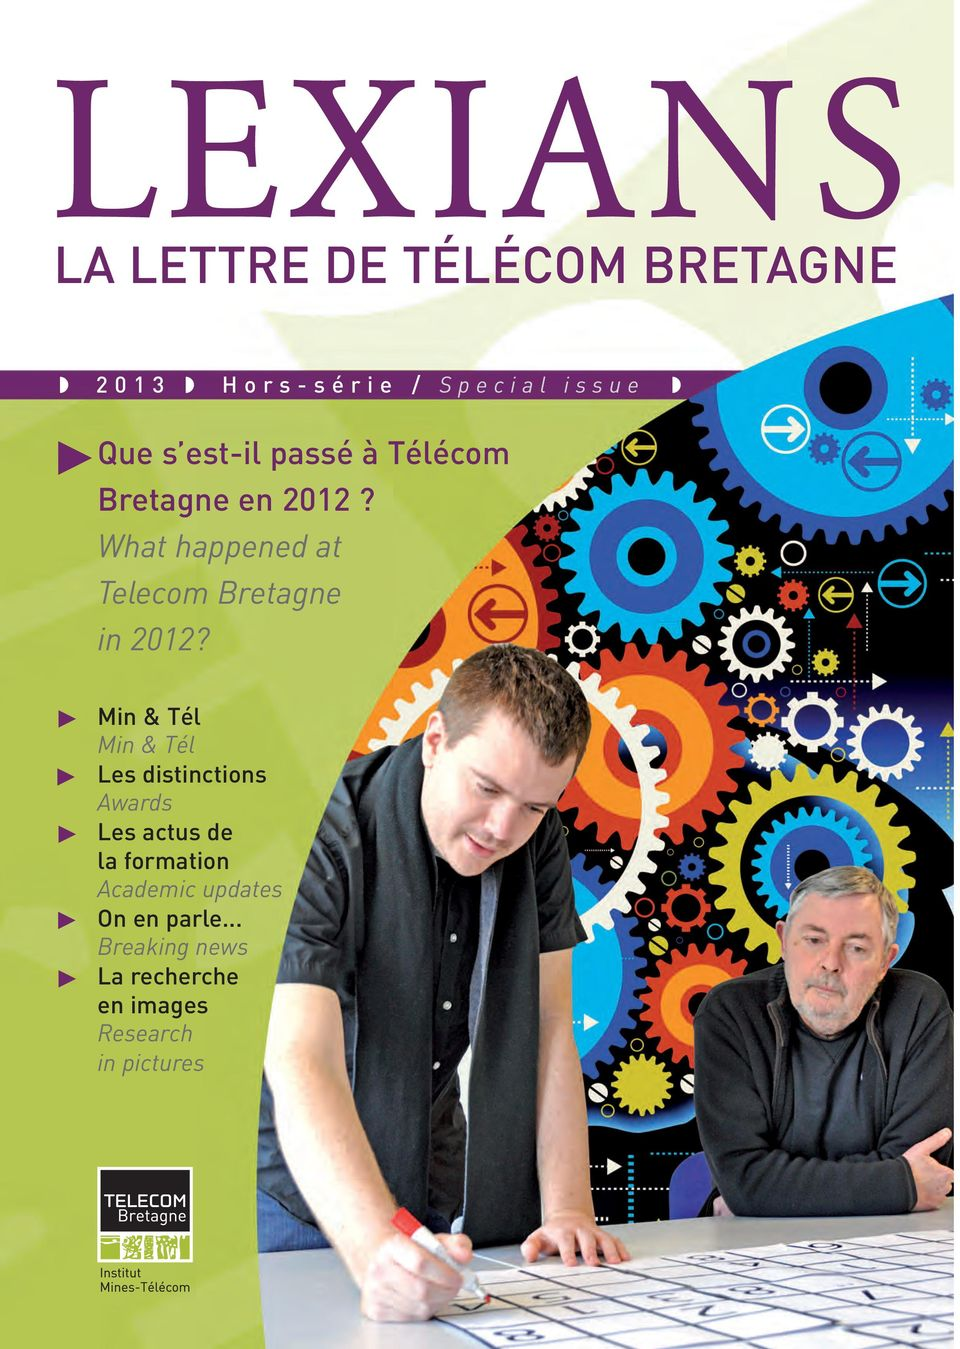 What happened at Telecom Bretagne in 2012?